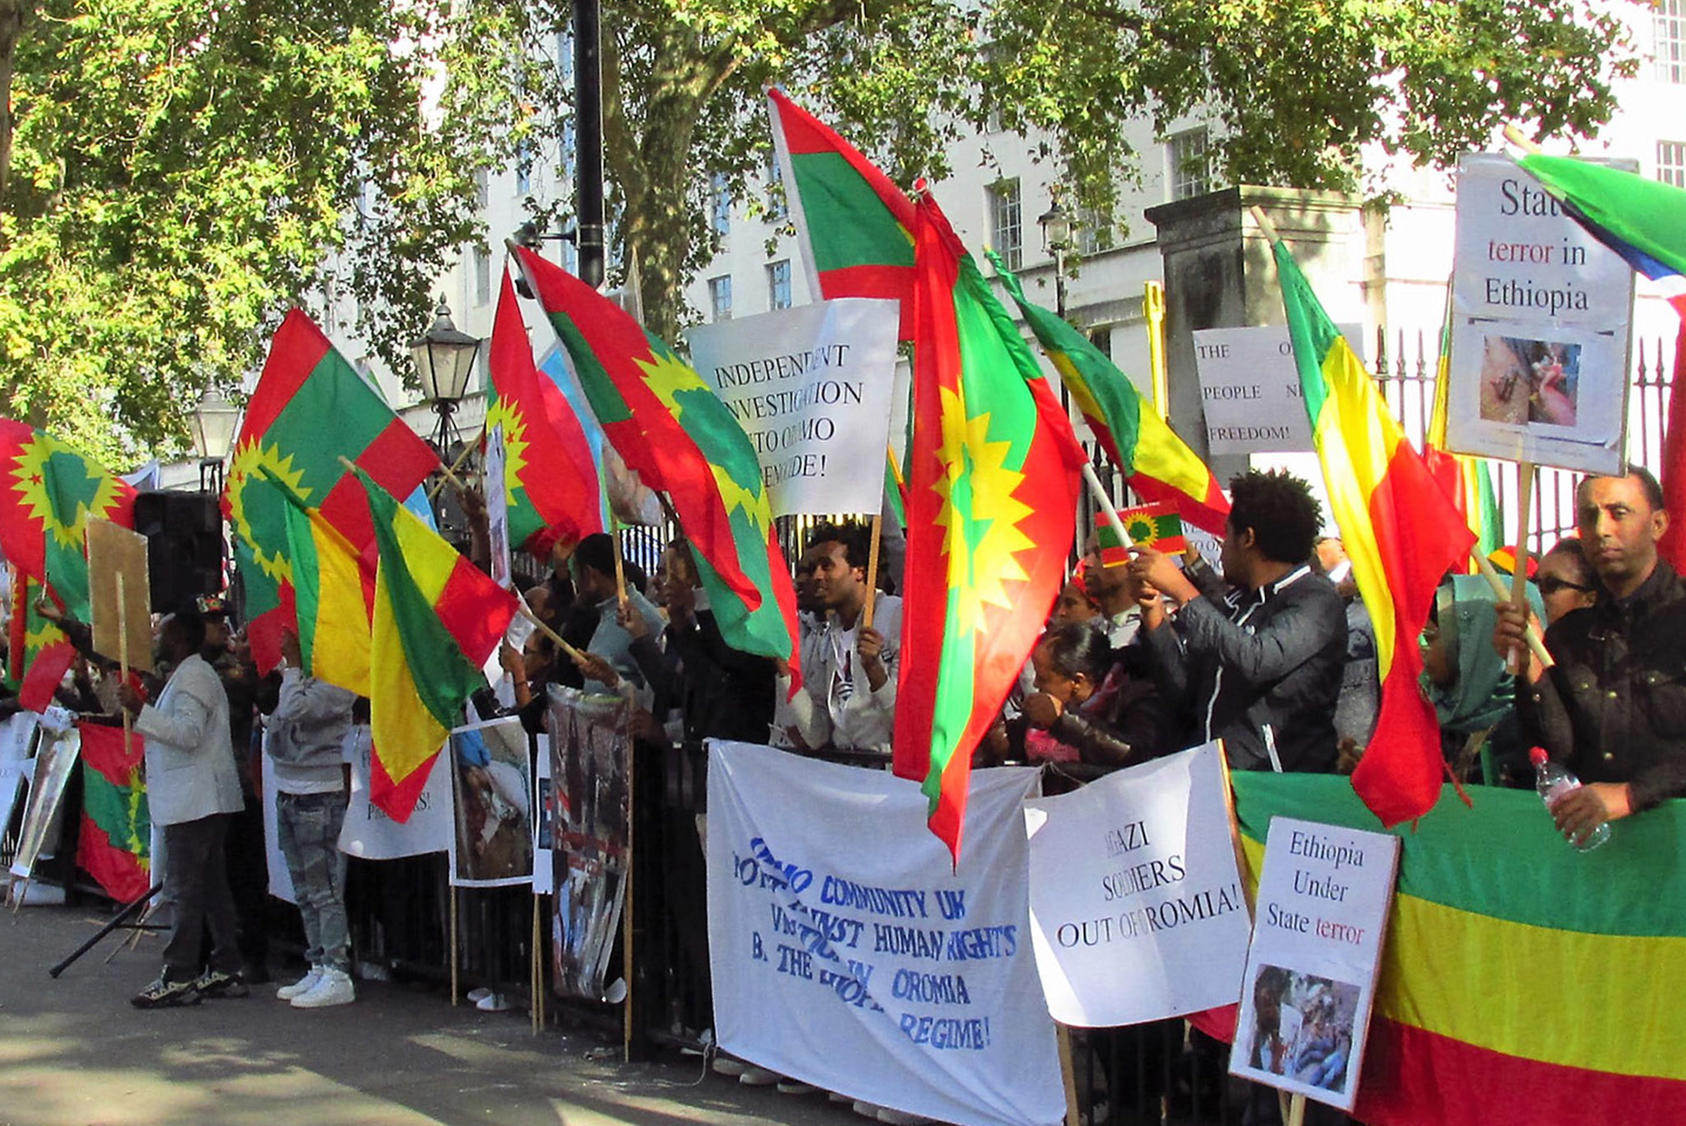 Protestors gather in London, U.K. in response to Ethiopian human rights concerns, October 11, 2016. Ethiopia's Prime Minister Abiy Ahmed has made strides to ease restrictions on civil liberties since taking office in April 2018. (David Holt via Flickr)